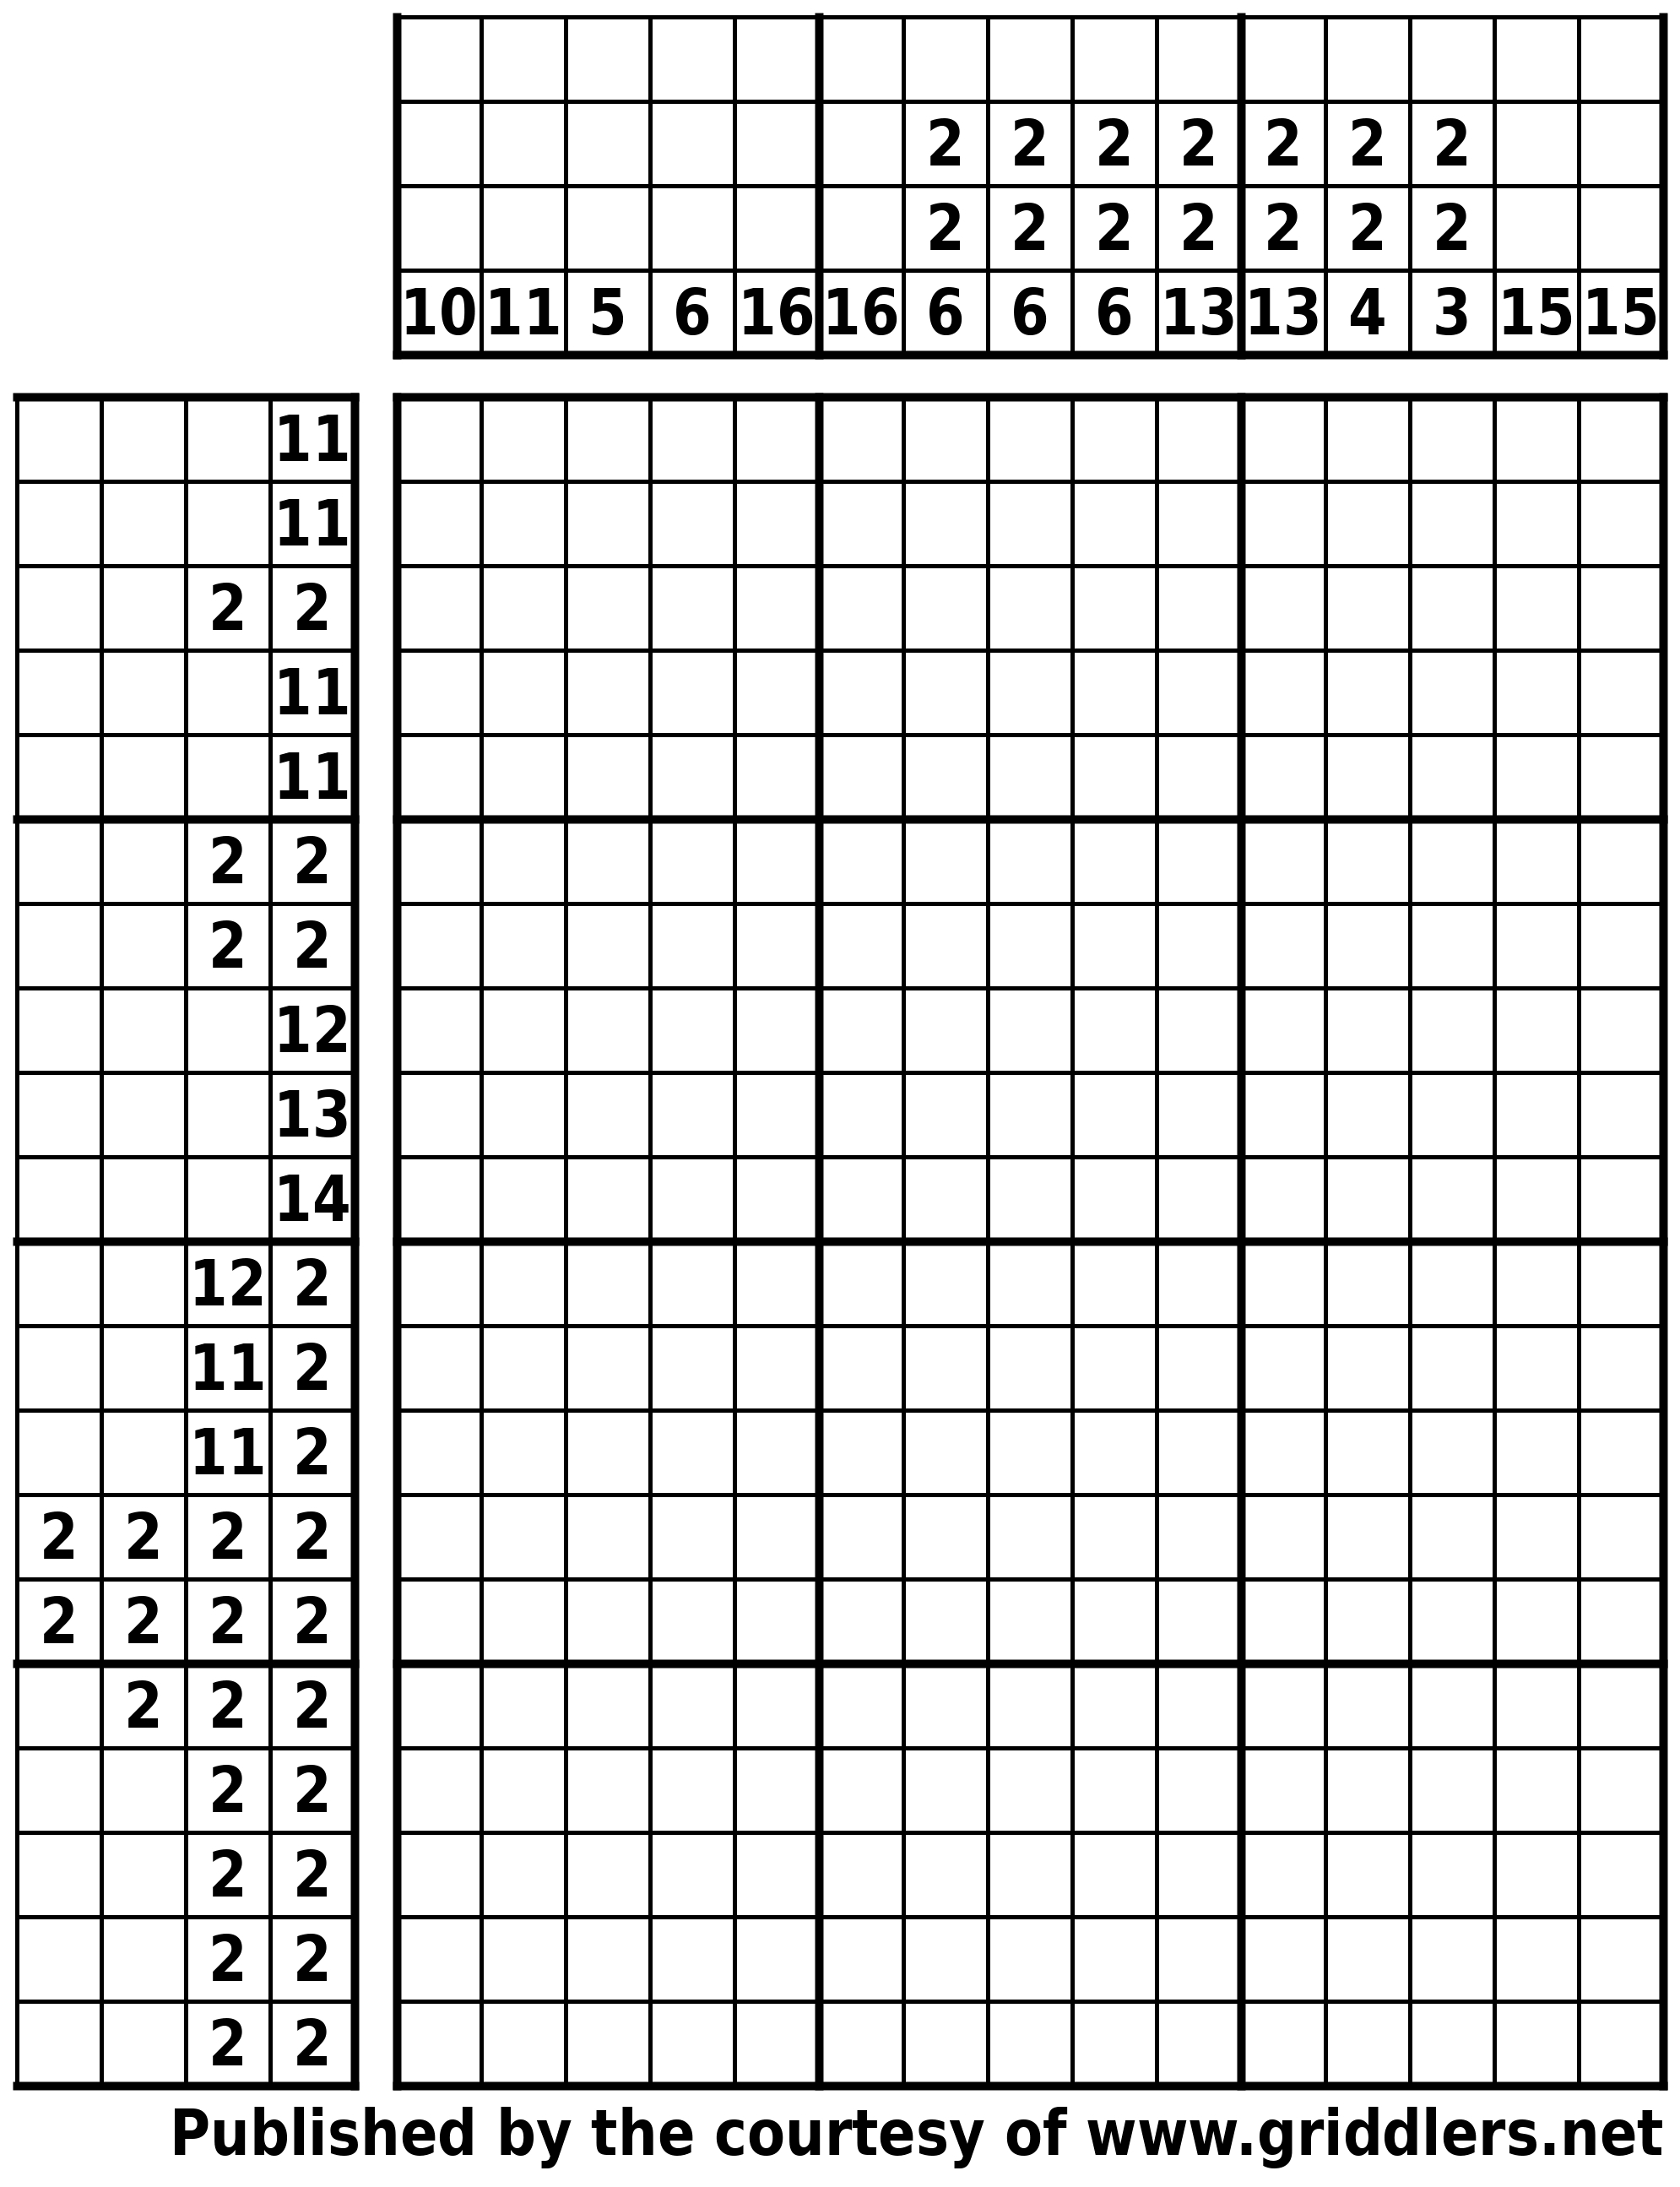 Free Printable Griddlers - Griddlers - Printable Picross Puzzles